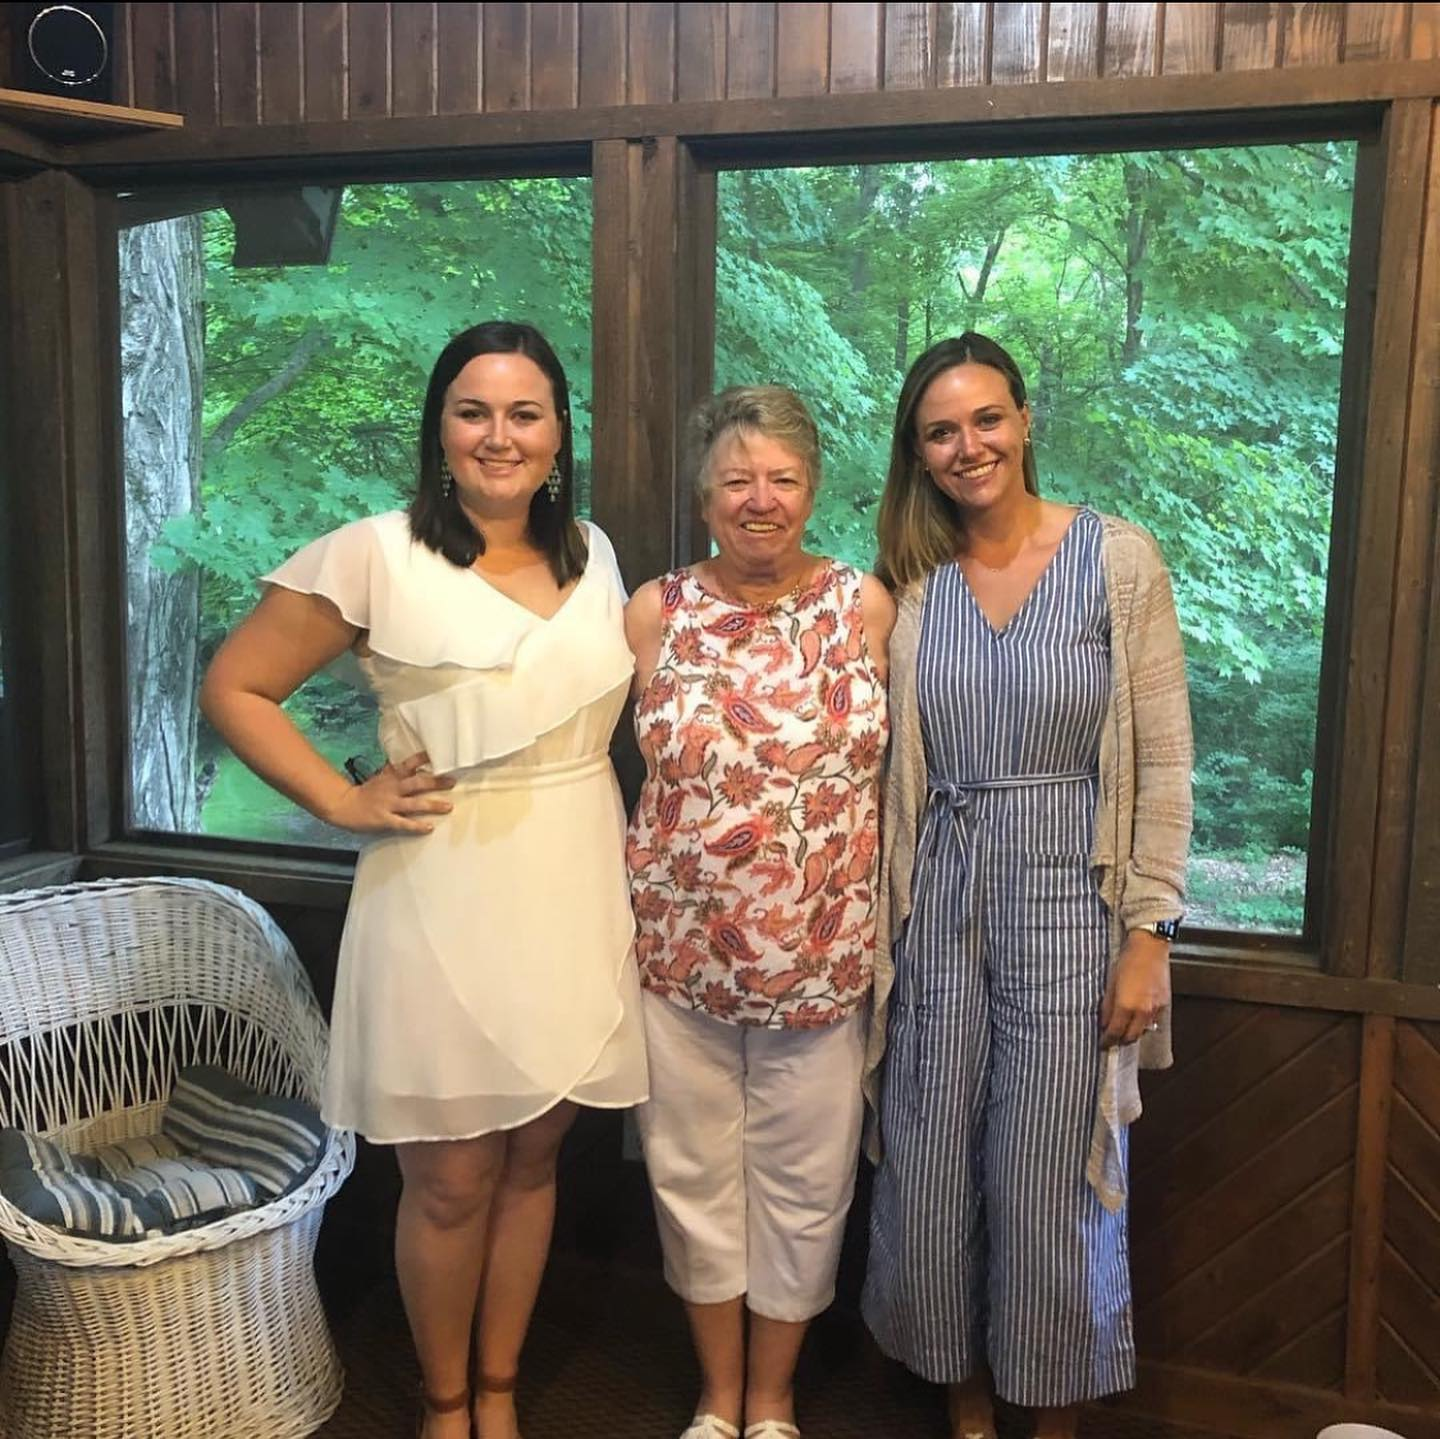 Grammy was so excited about her granddaughters getting married last summer!